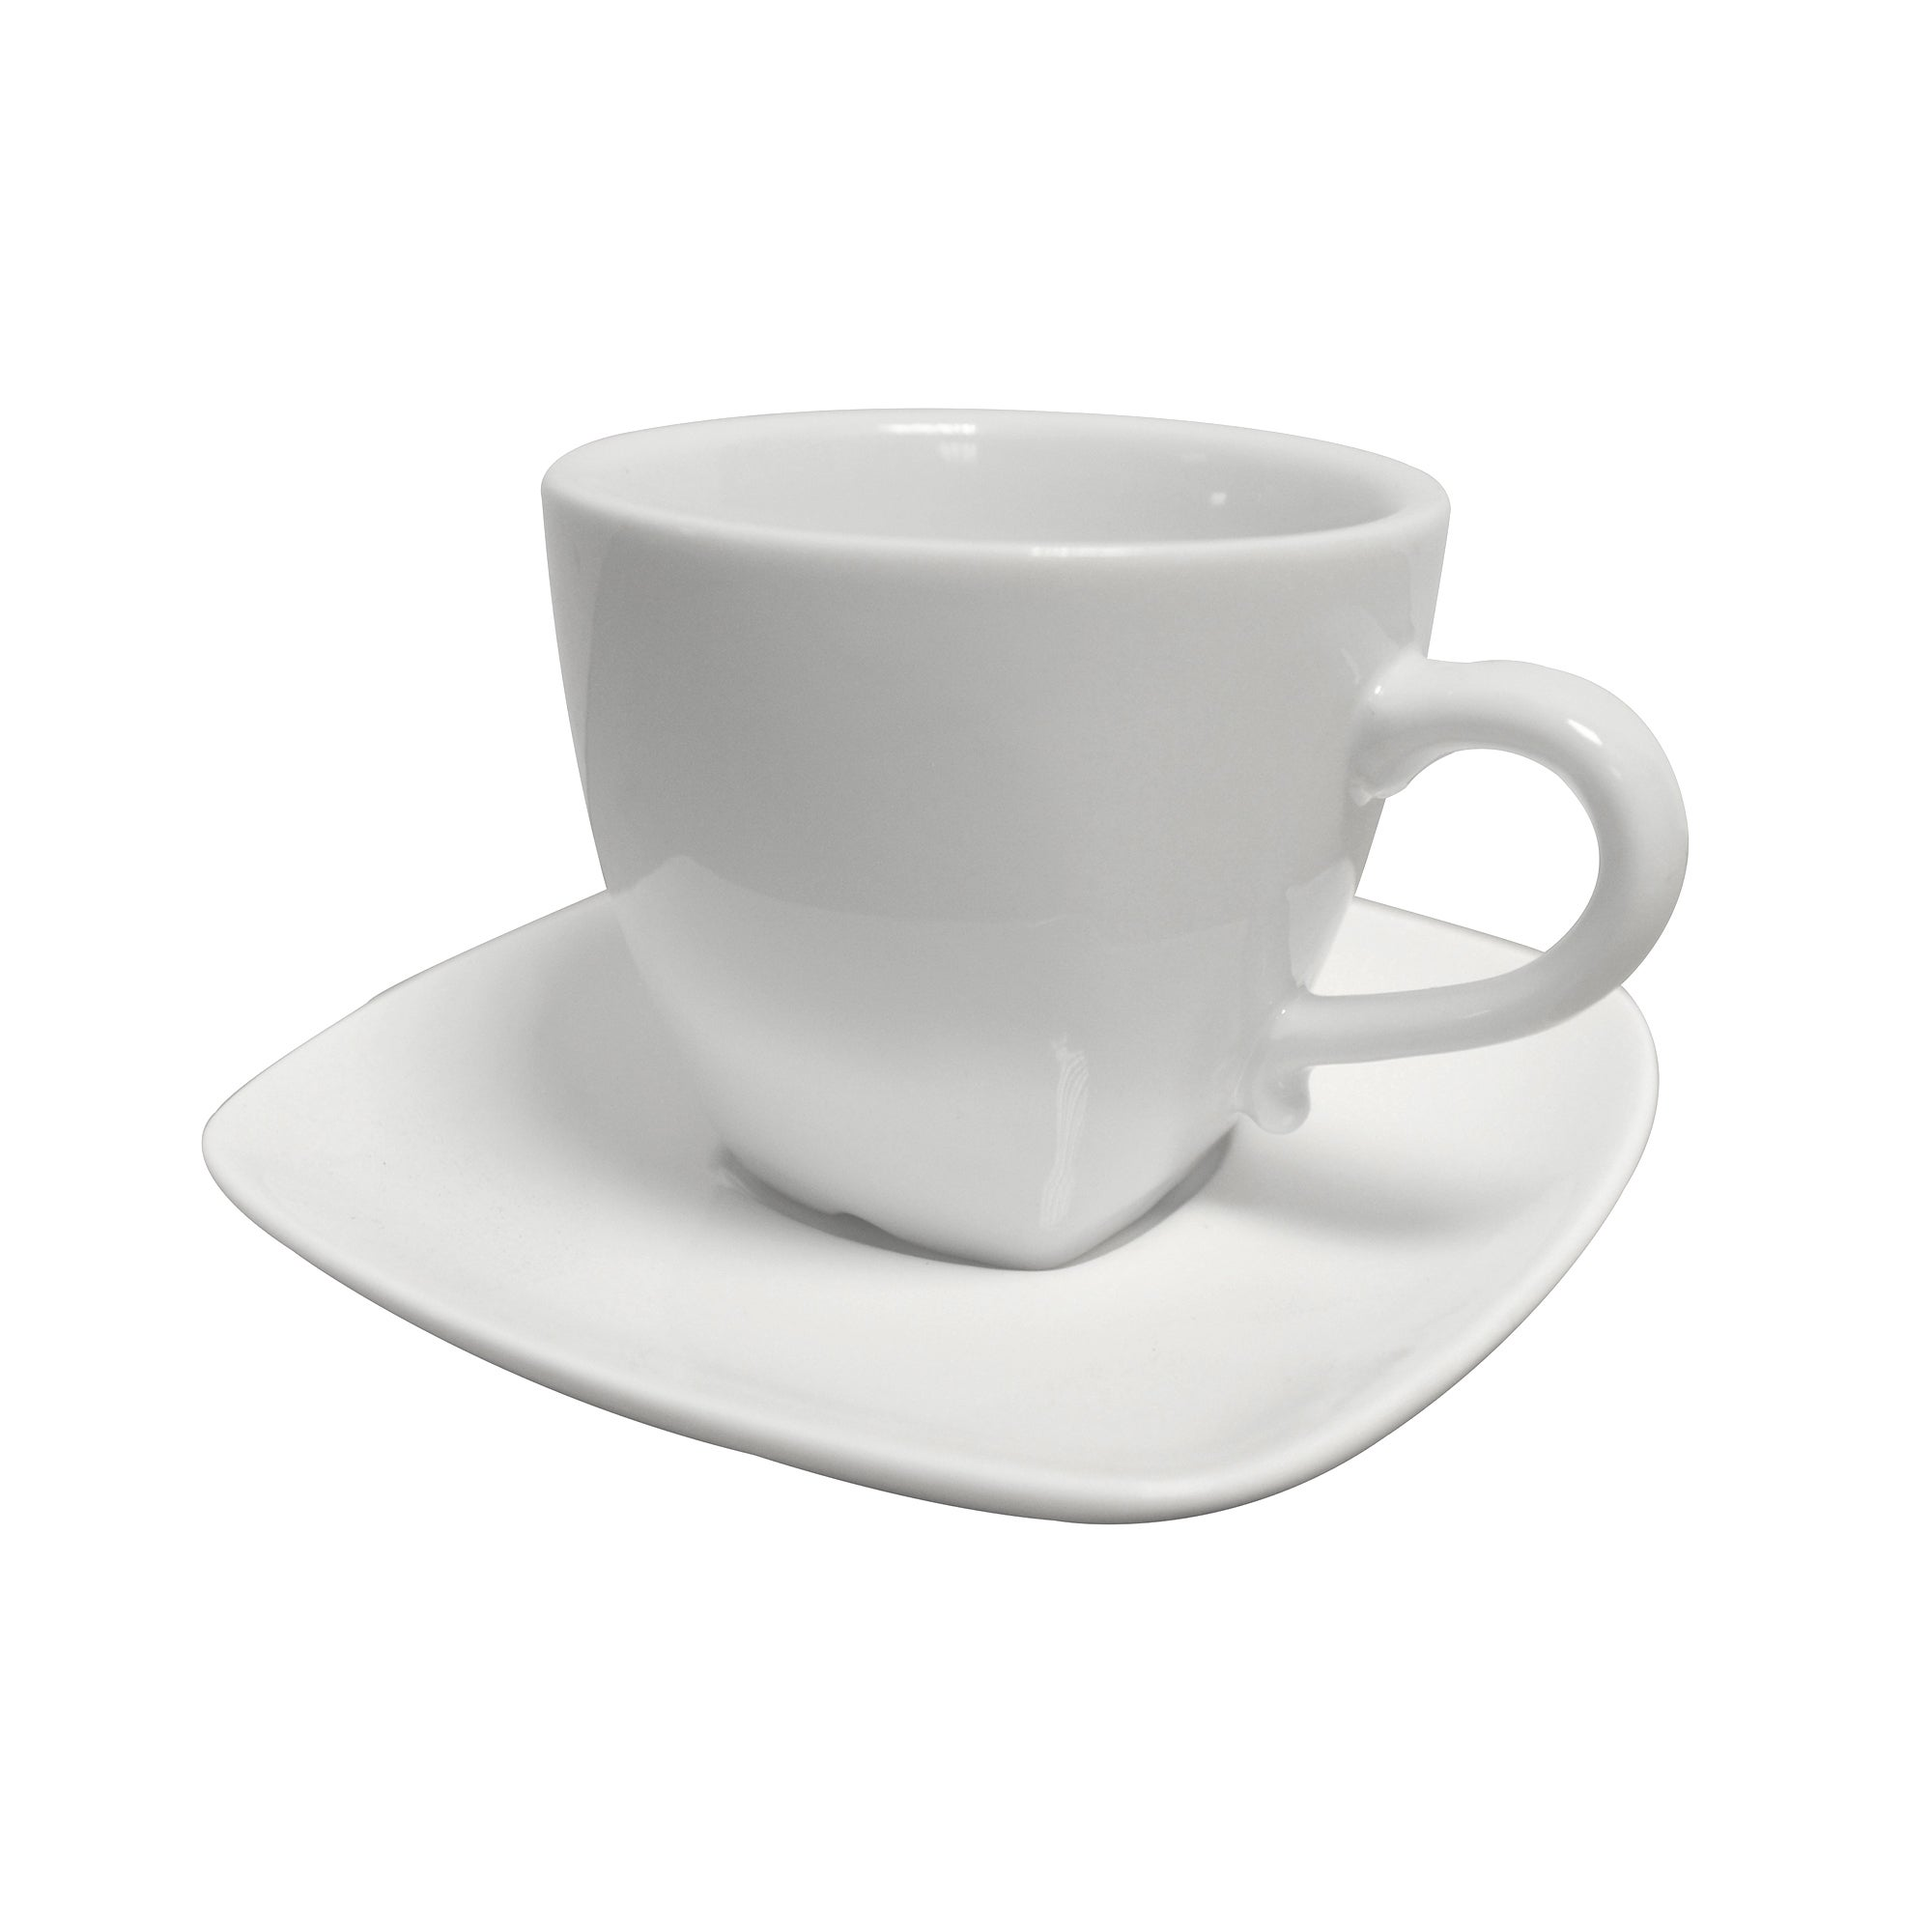 Pausa Collection Espresso Cup and Saucer